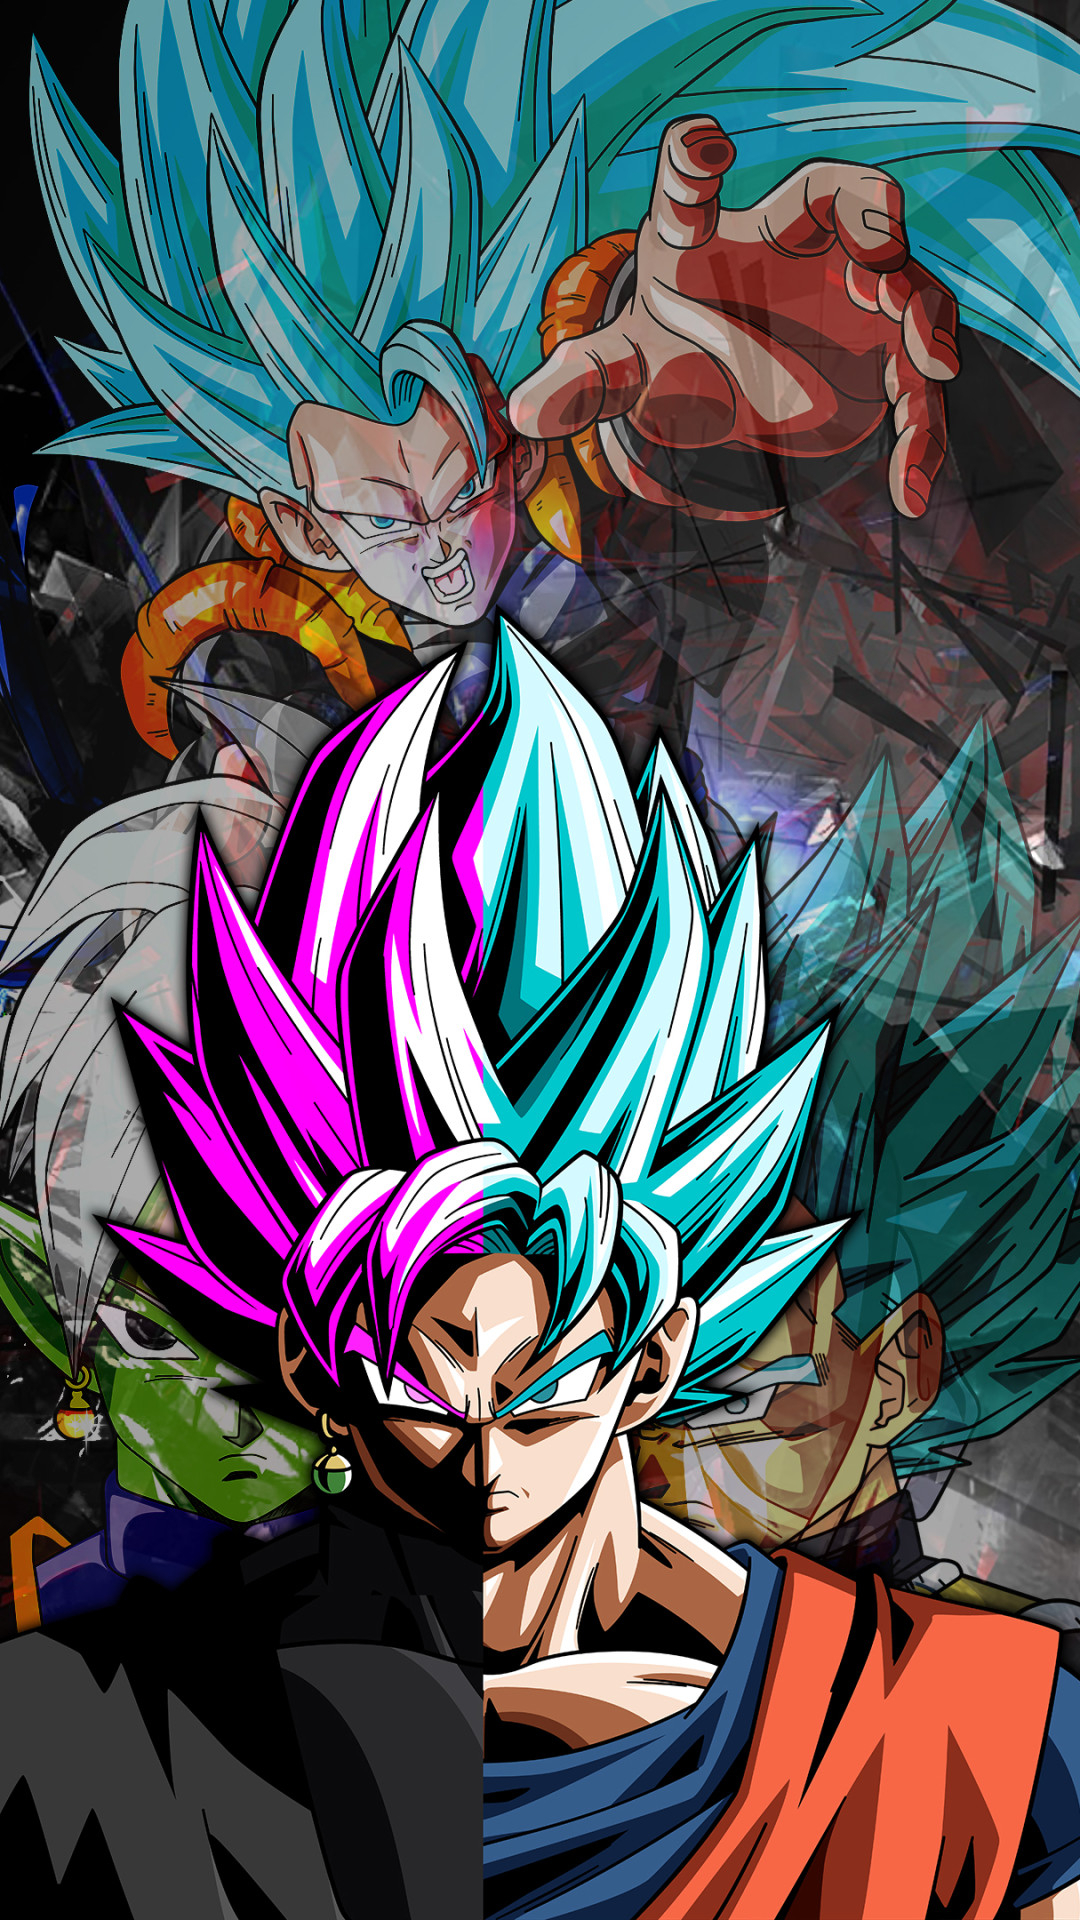 2560x1440 I hope you like it and enjoy the adventures of Goku. Have a look at some great Dragon Ball wallpaper i have found for your desktop: